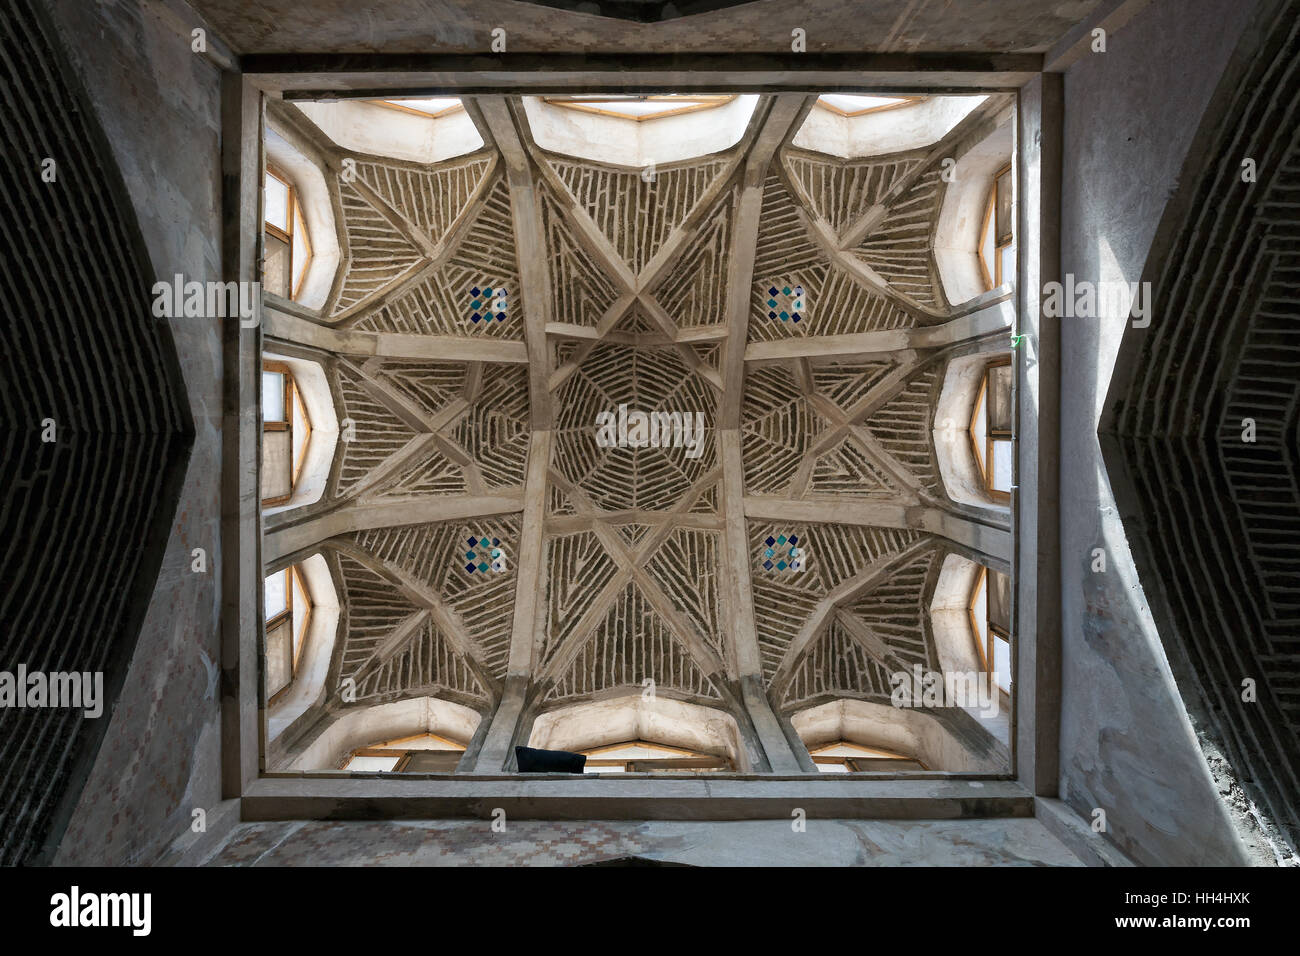 Ancient dome of Jameh mosque of Isfahan, Iran - Stock Image